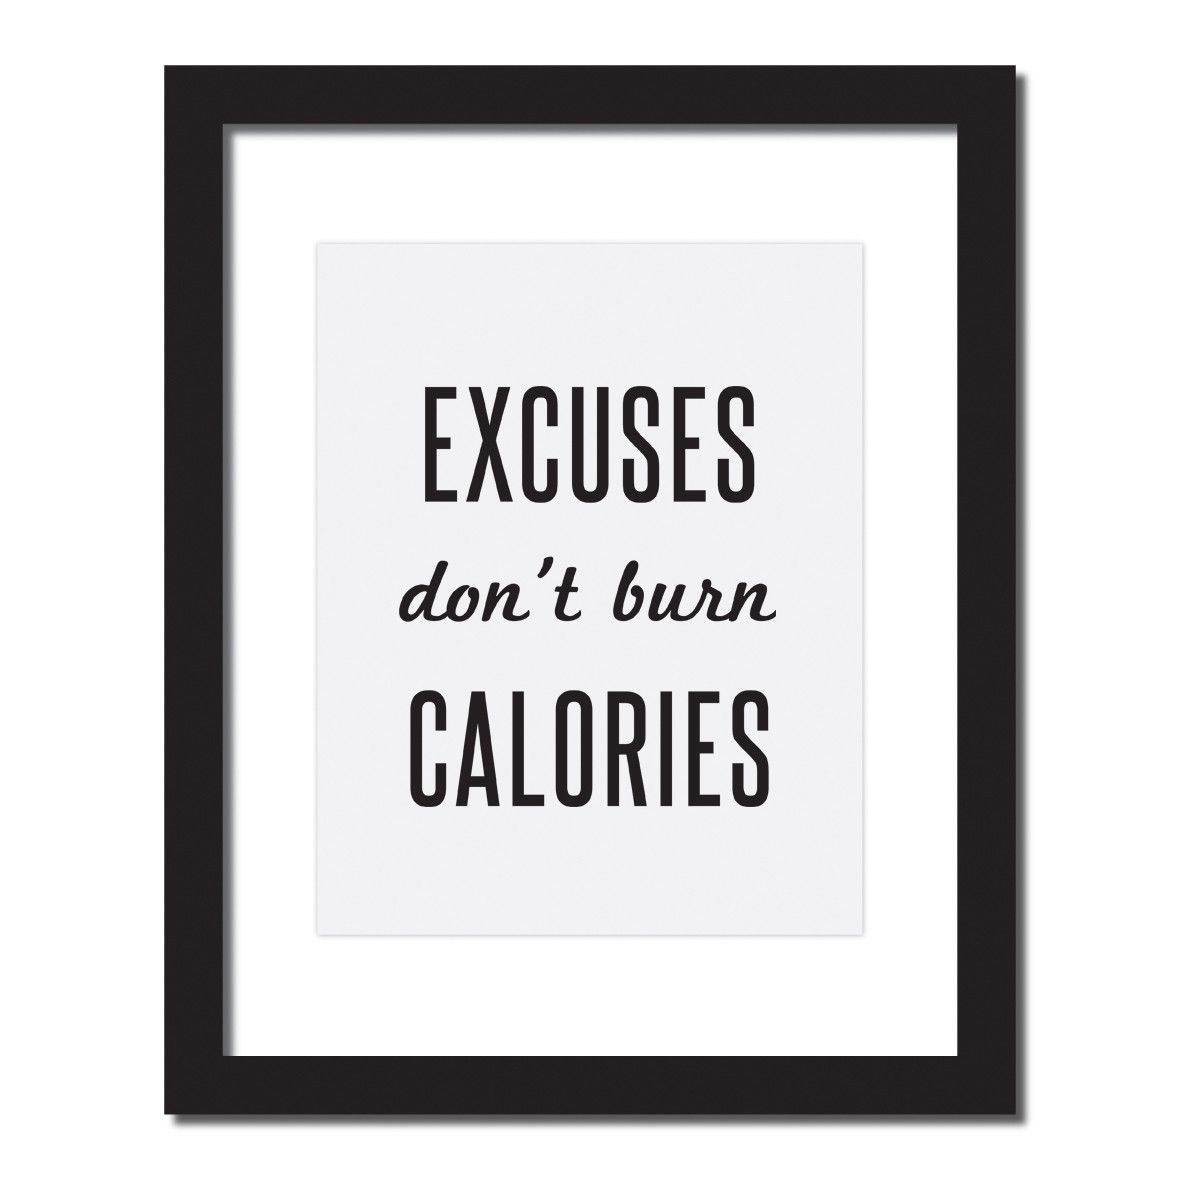 Inspirational Quote Print Excuses Don T Burn Calories Fitness Motivation Quotes Motivation Health Fitness Motivation